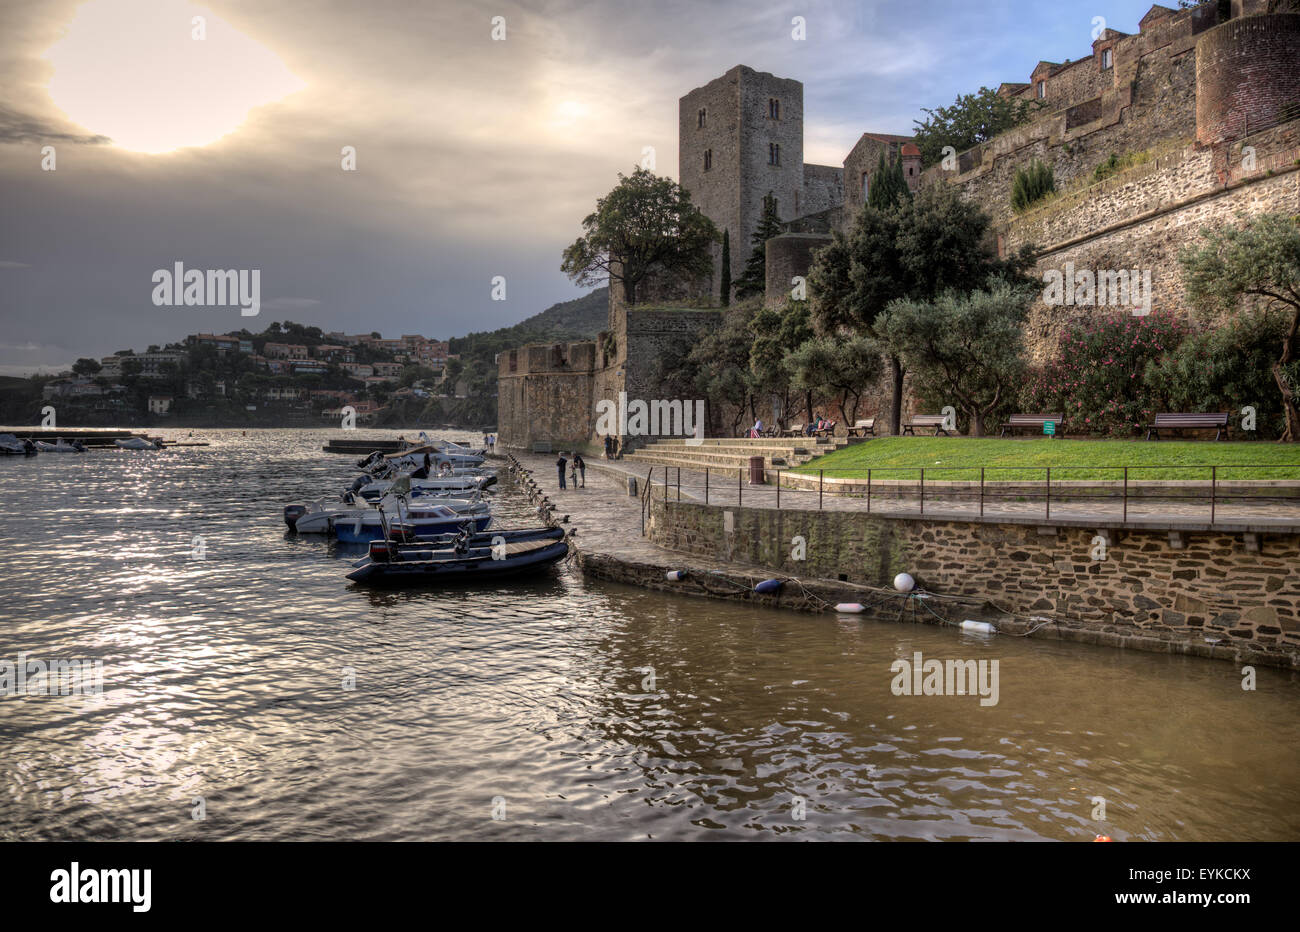 The historical Chateau at Collioure in France. Stock Photo